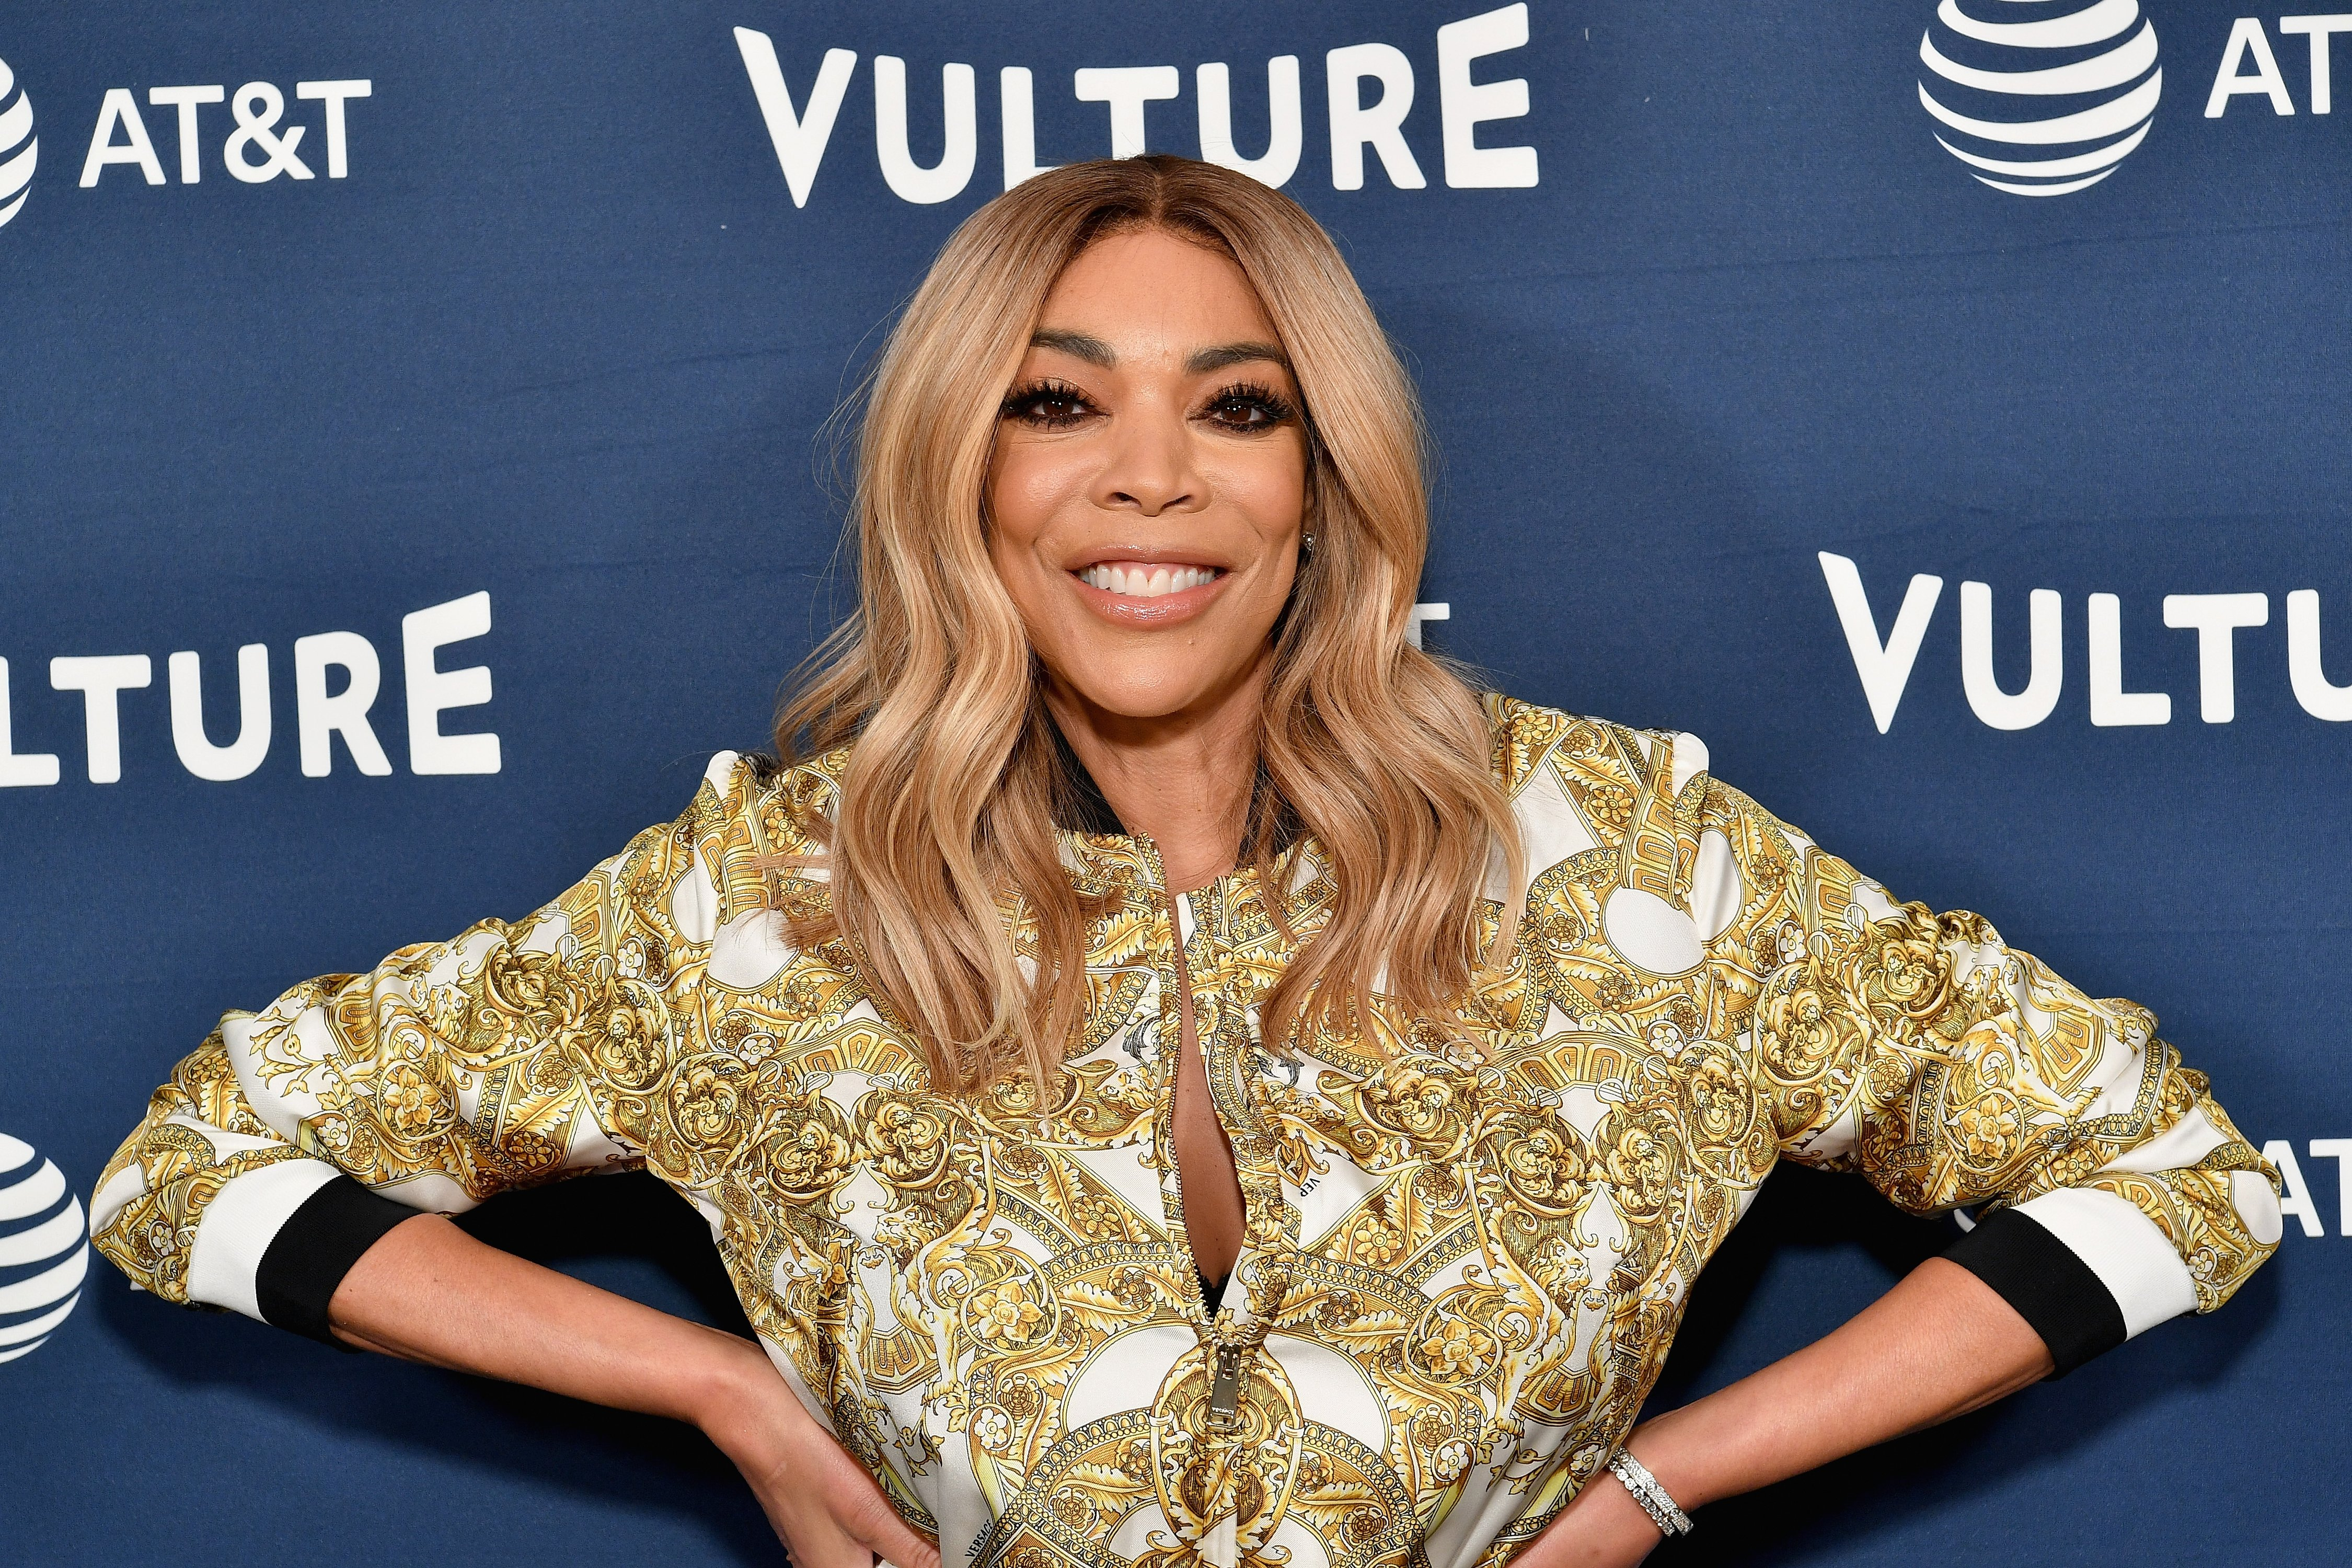 Wendy Williams au Vulture Festival organisé par AT&T. l Source : Getty Images